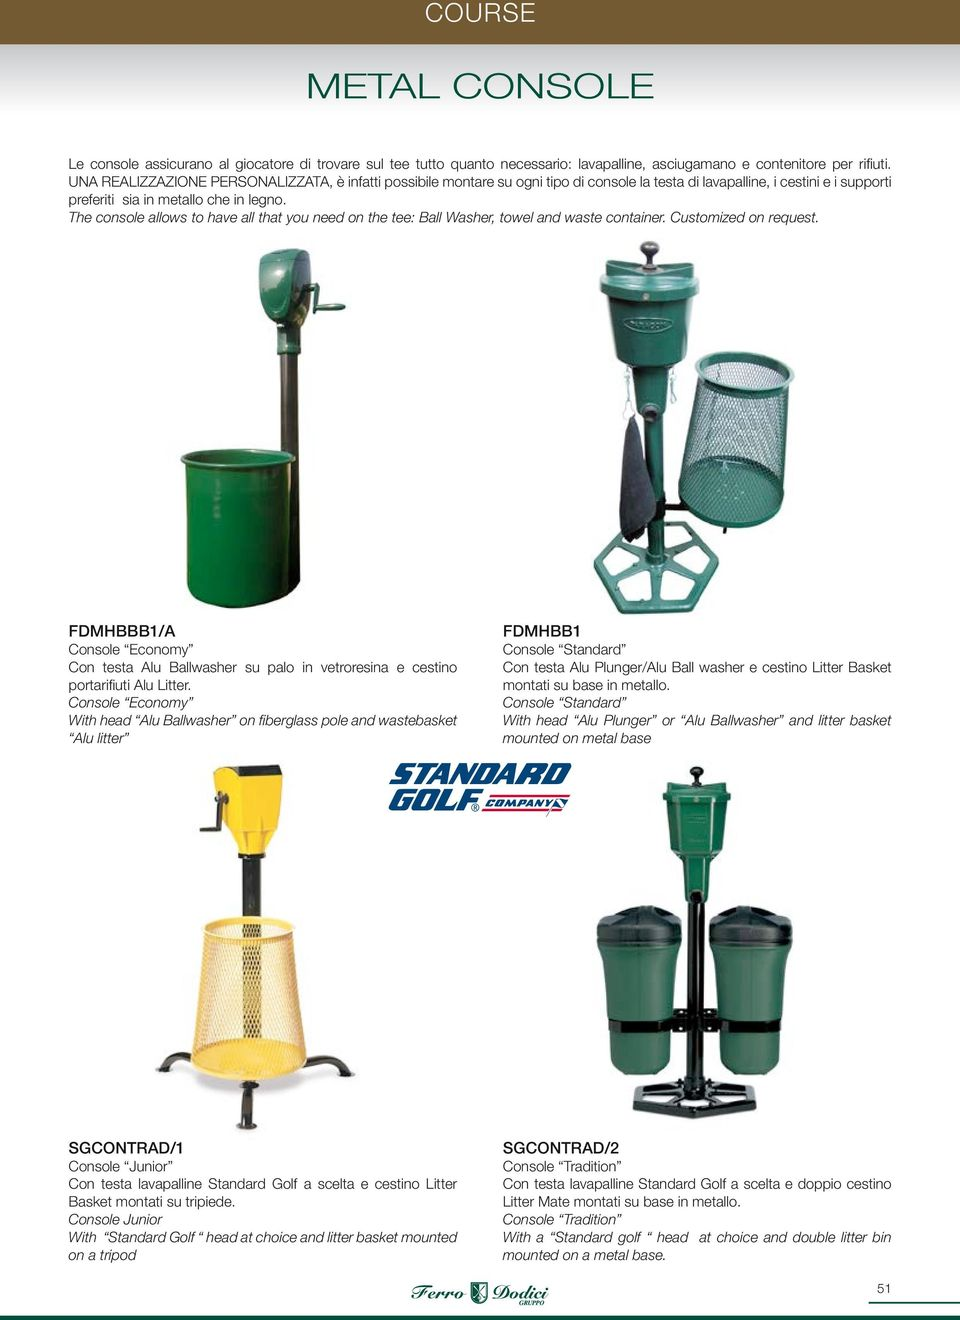 The console allows to have all that you need on the tee: Ball Washer, towel and waste container. Customized on request.